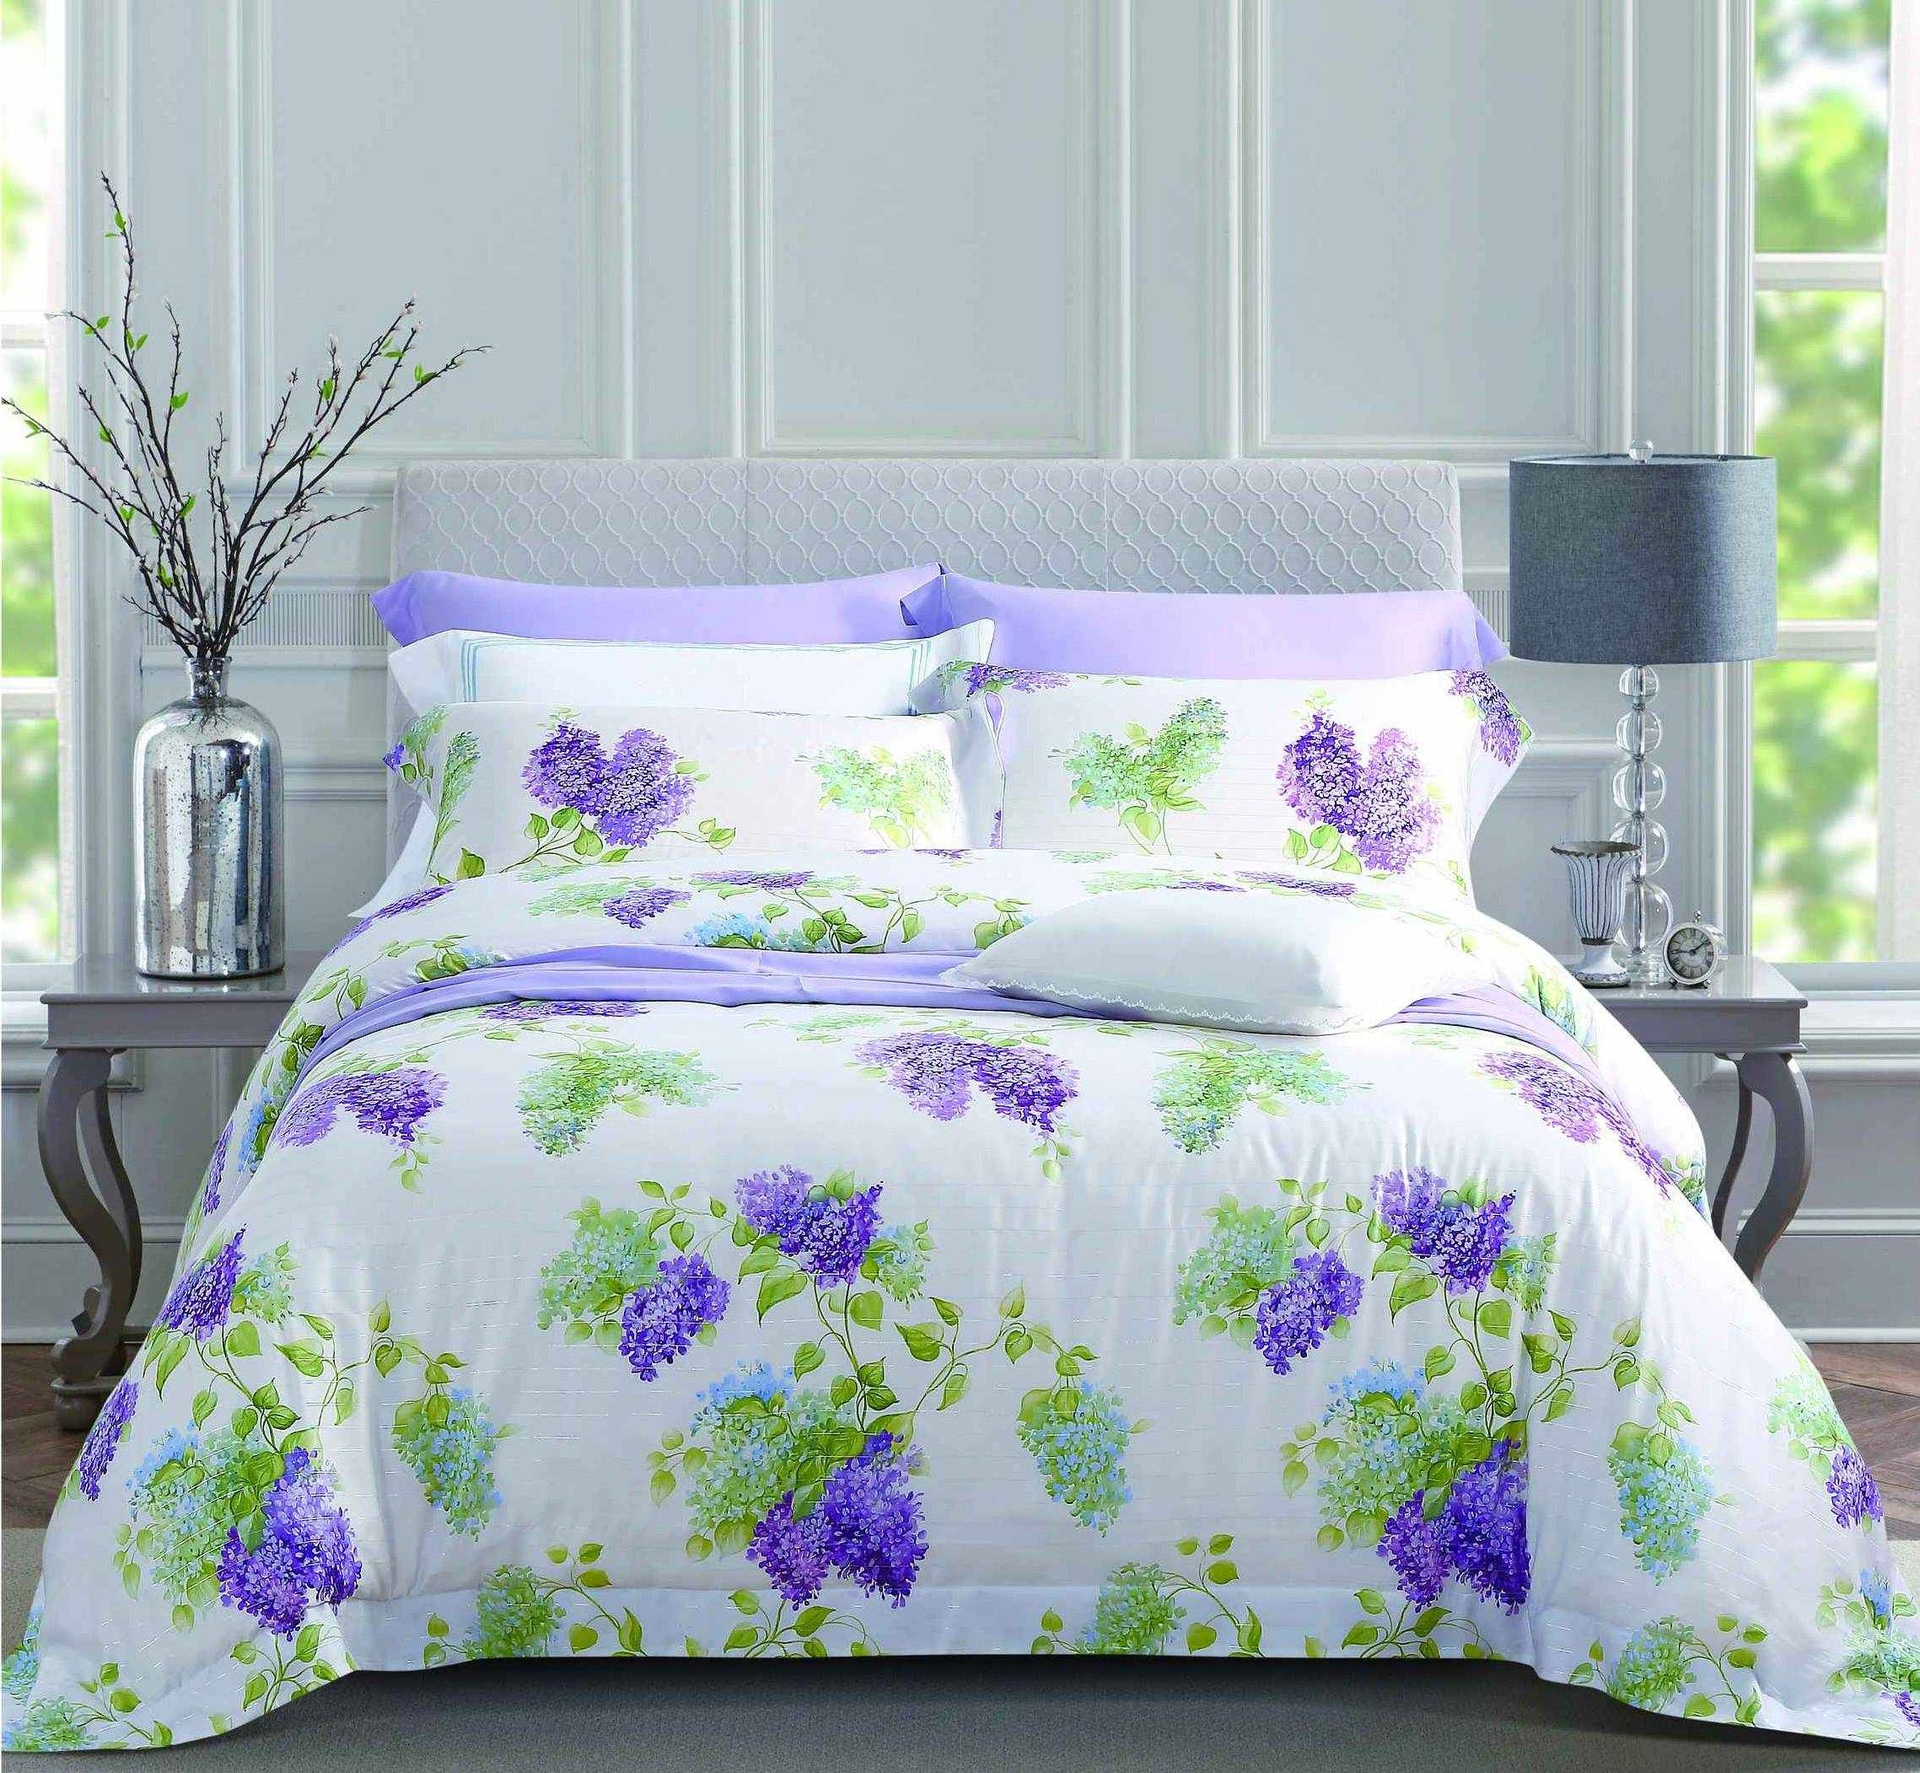 Wisteria Patterns Lyocell & Filamentary Silver Blend Bed Linen 171256